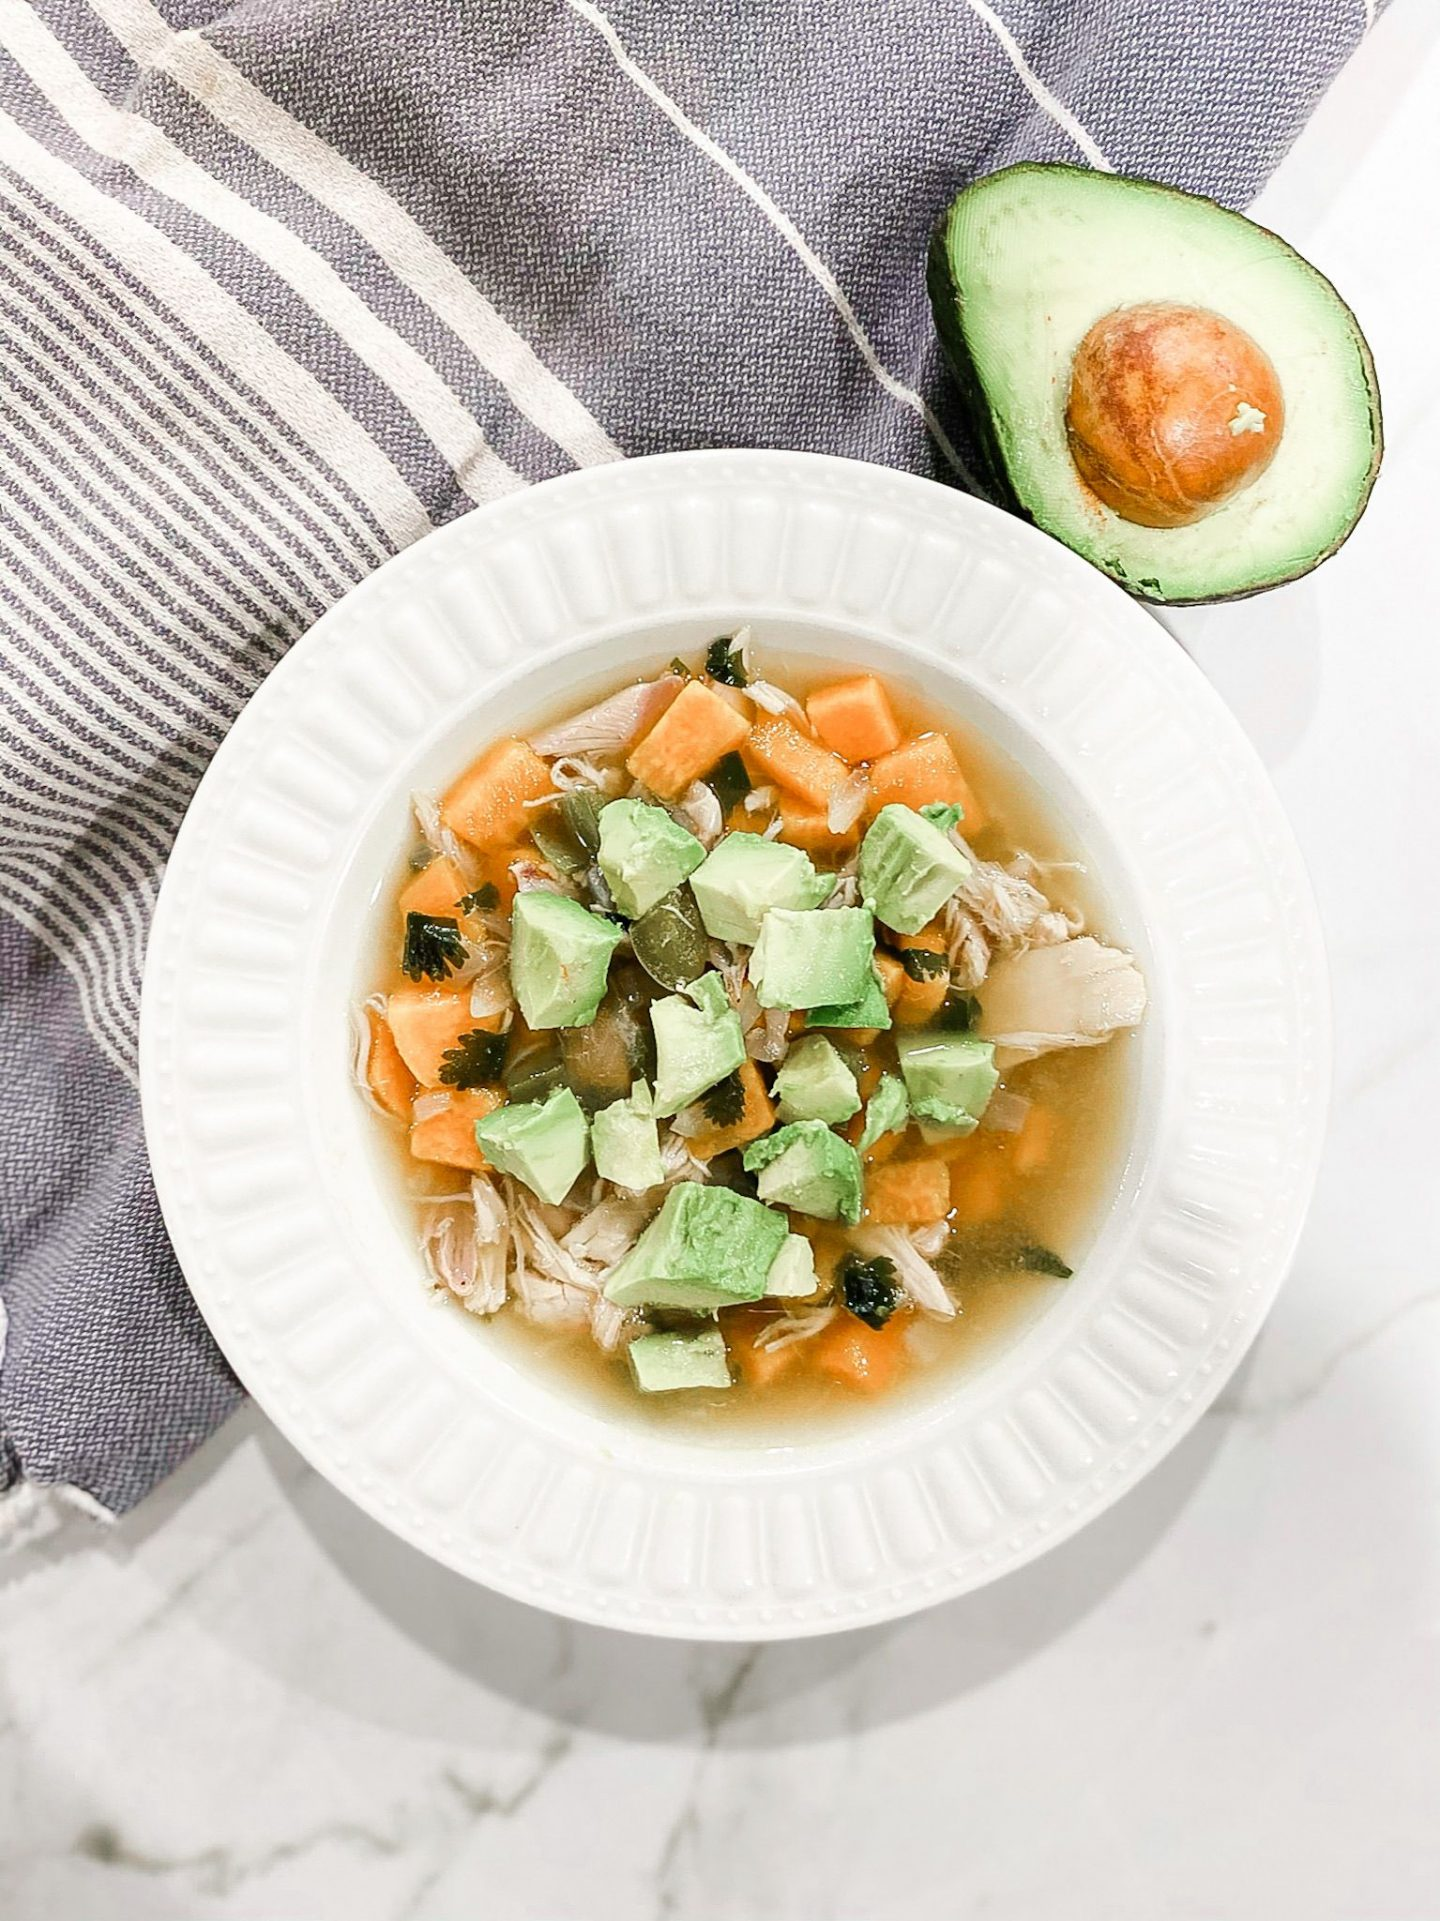 Whole30 White Chicken Chili Recipe (Paleo) by Alabama Food + Health blogger, Heather Brown // My Life Well Loved